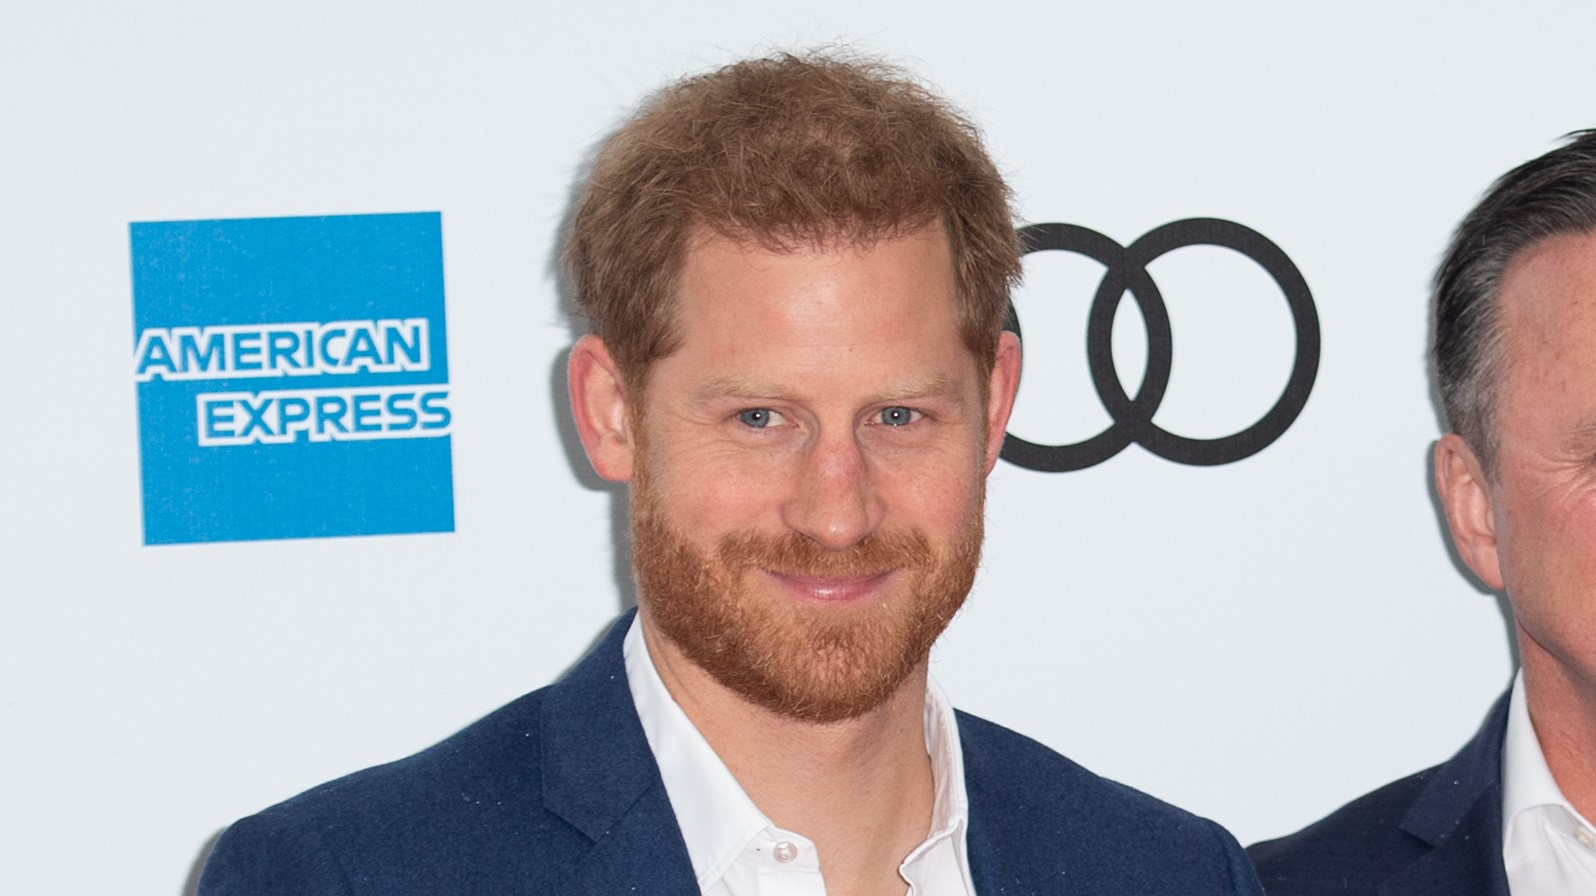 Fans spot something odd about Prince Harry's shoes after Archie's christening photo